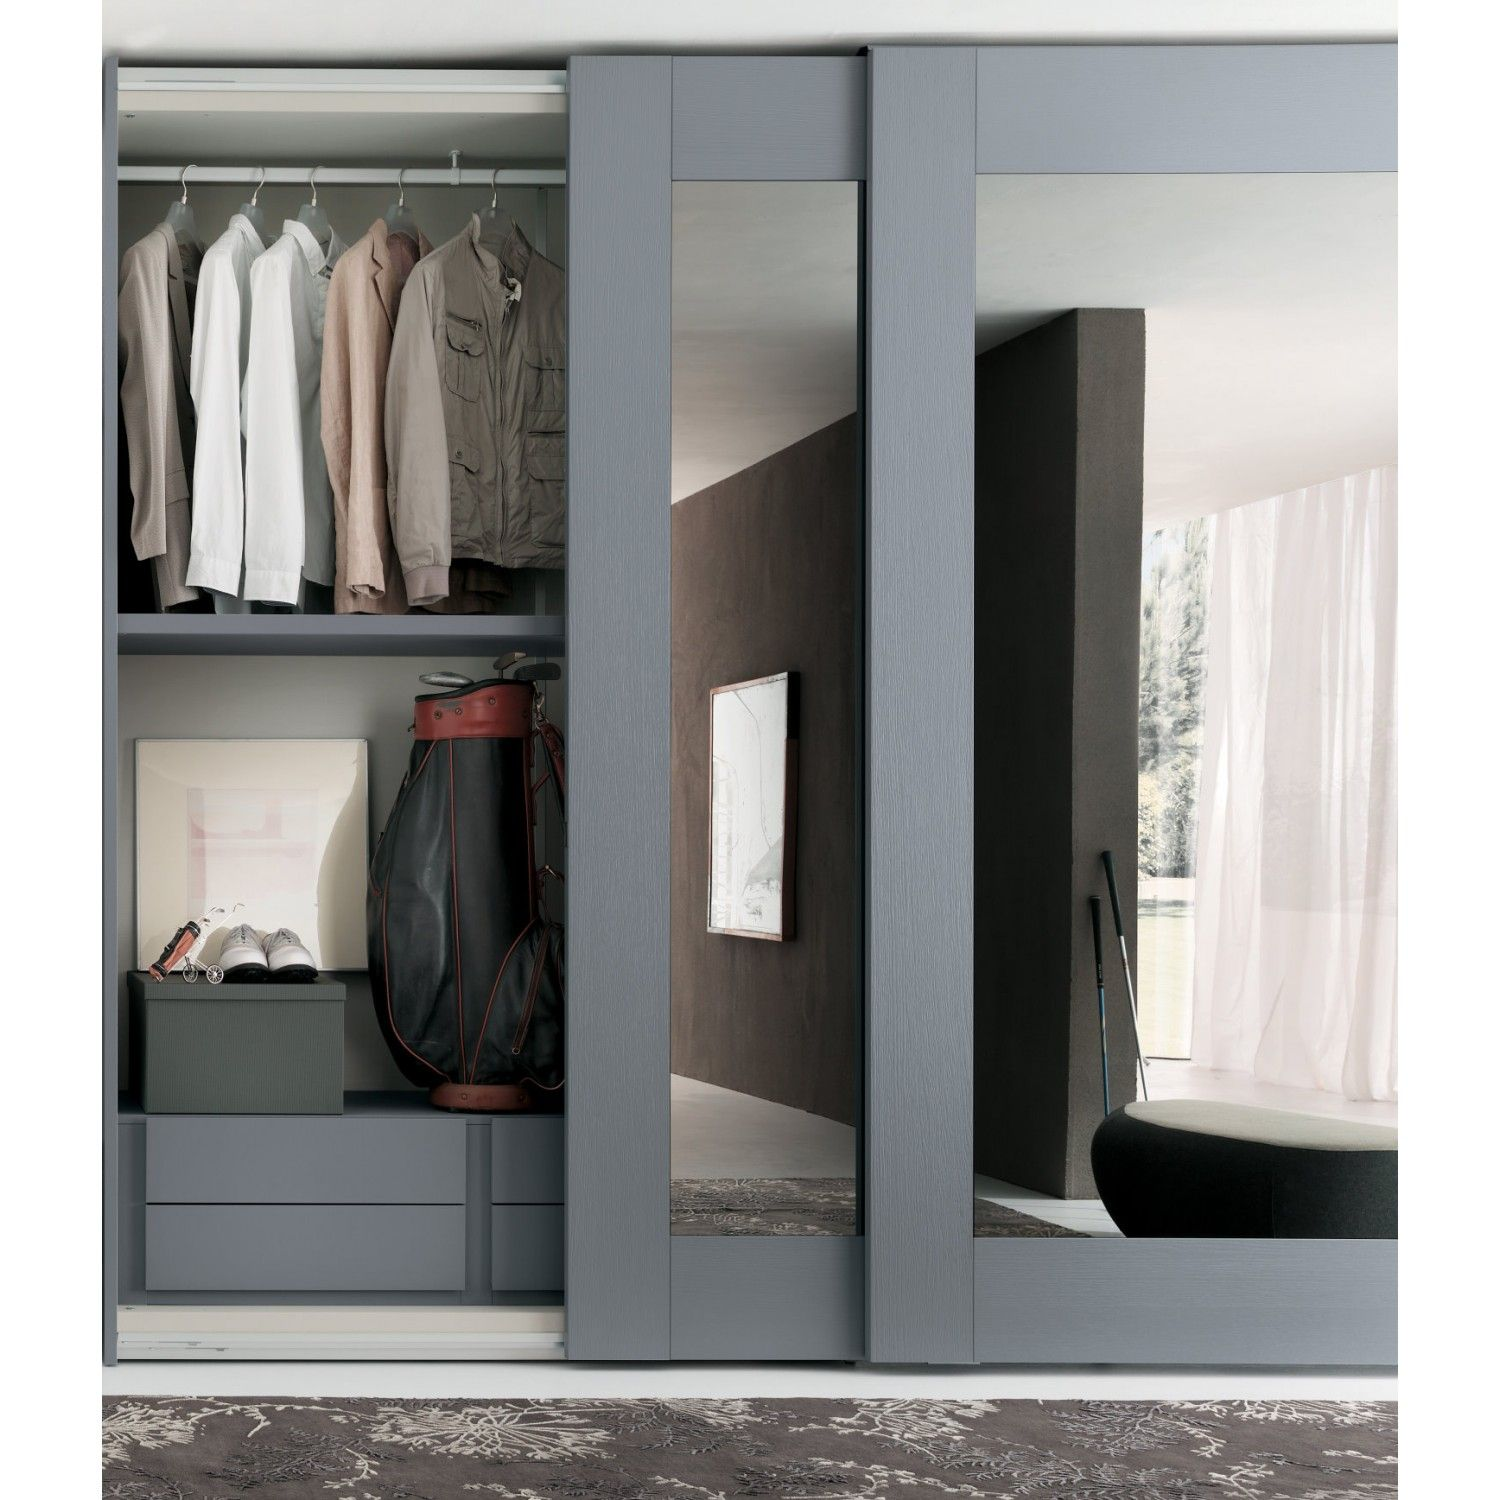 Mirror sliding wardrobe of Player collection with white glossy